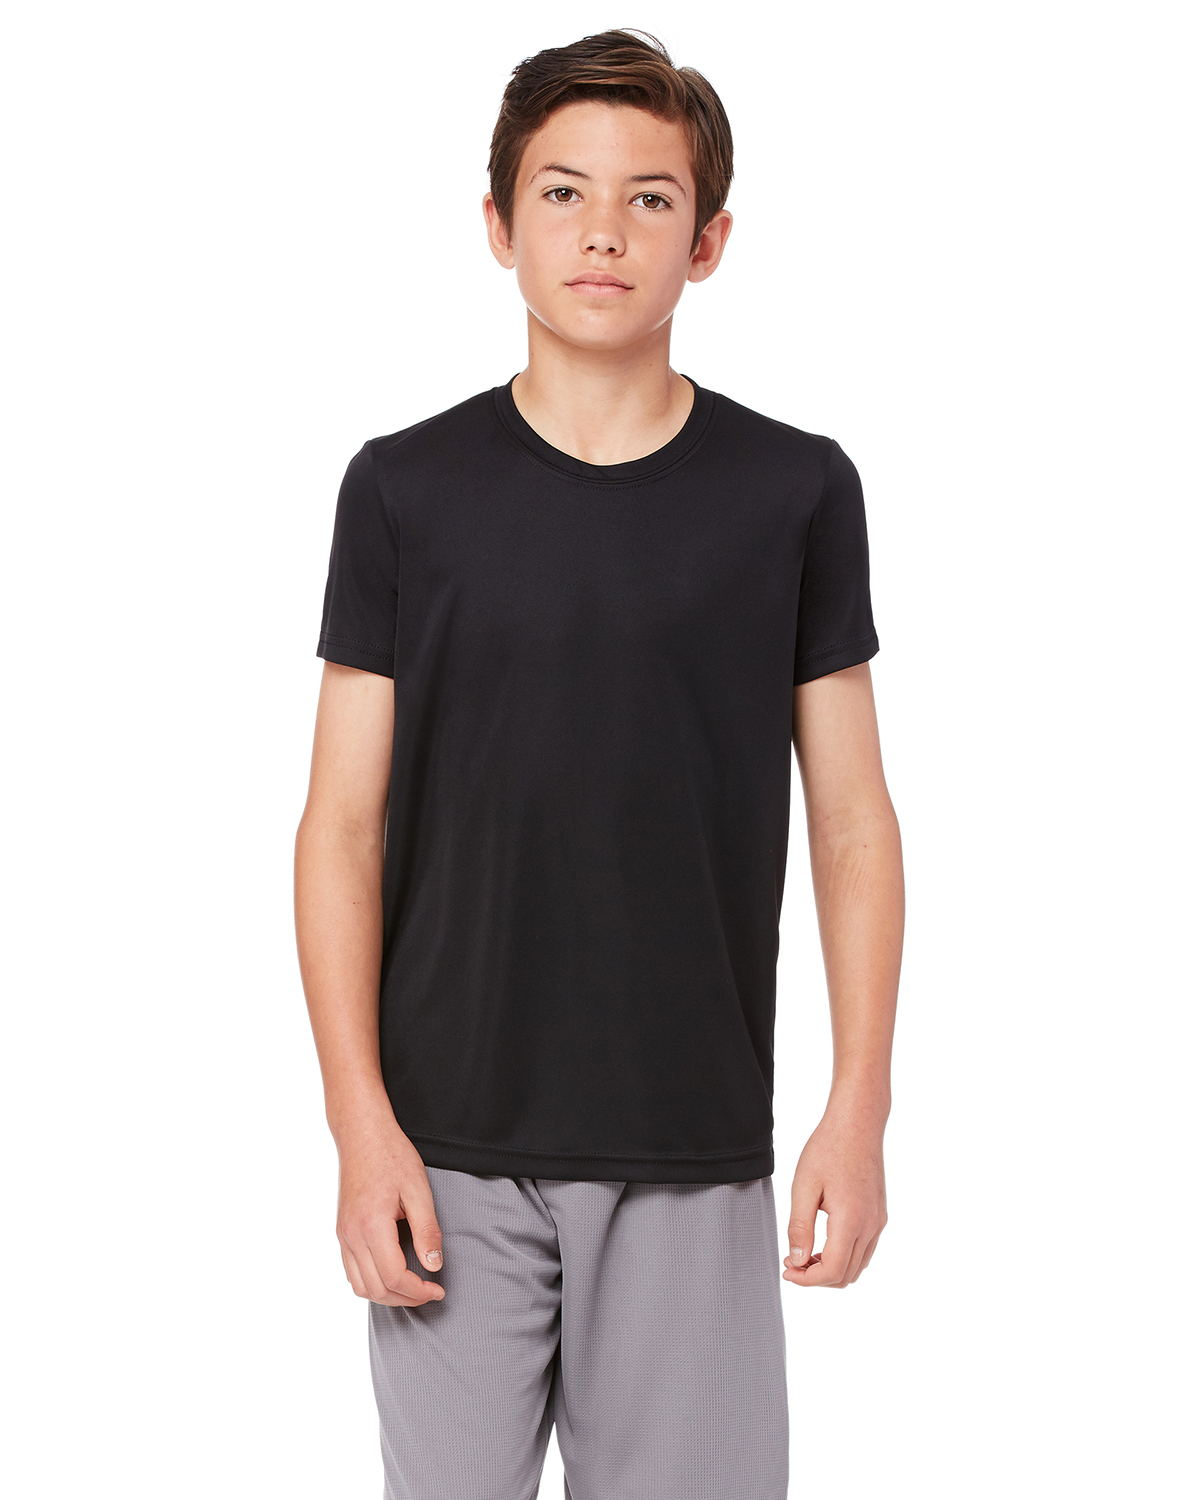 alo Youth Performance Short Sleeve T-Shirt - Y1009